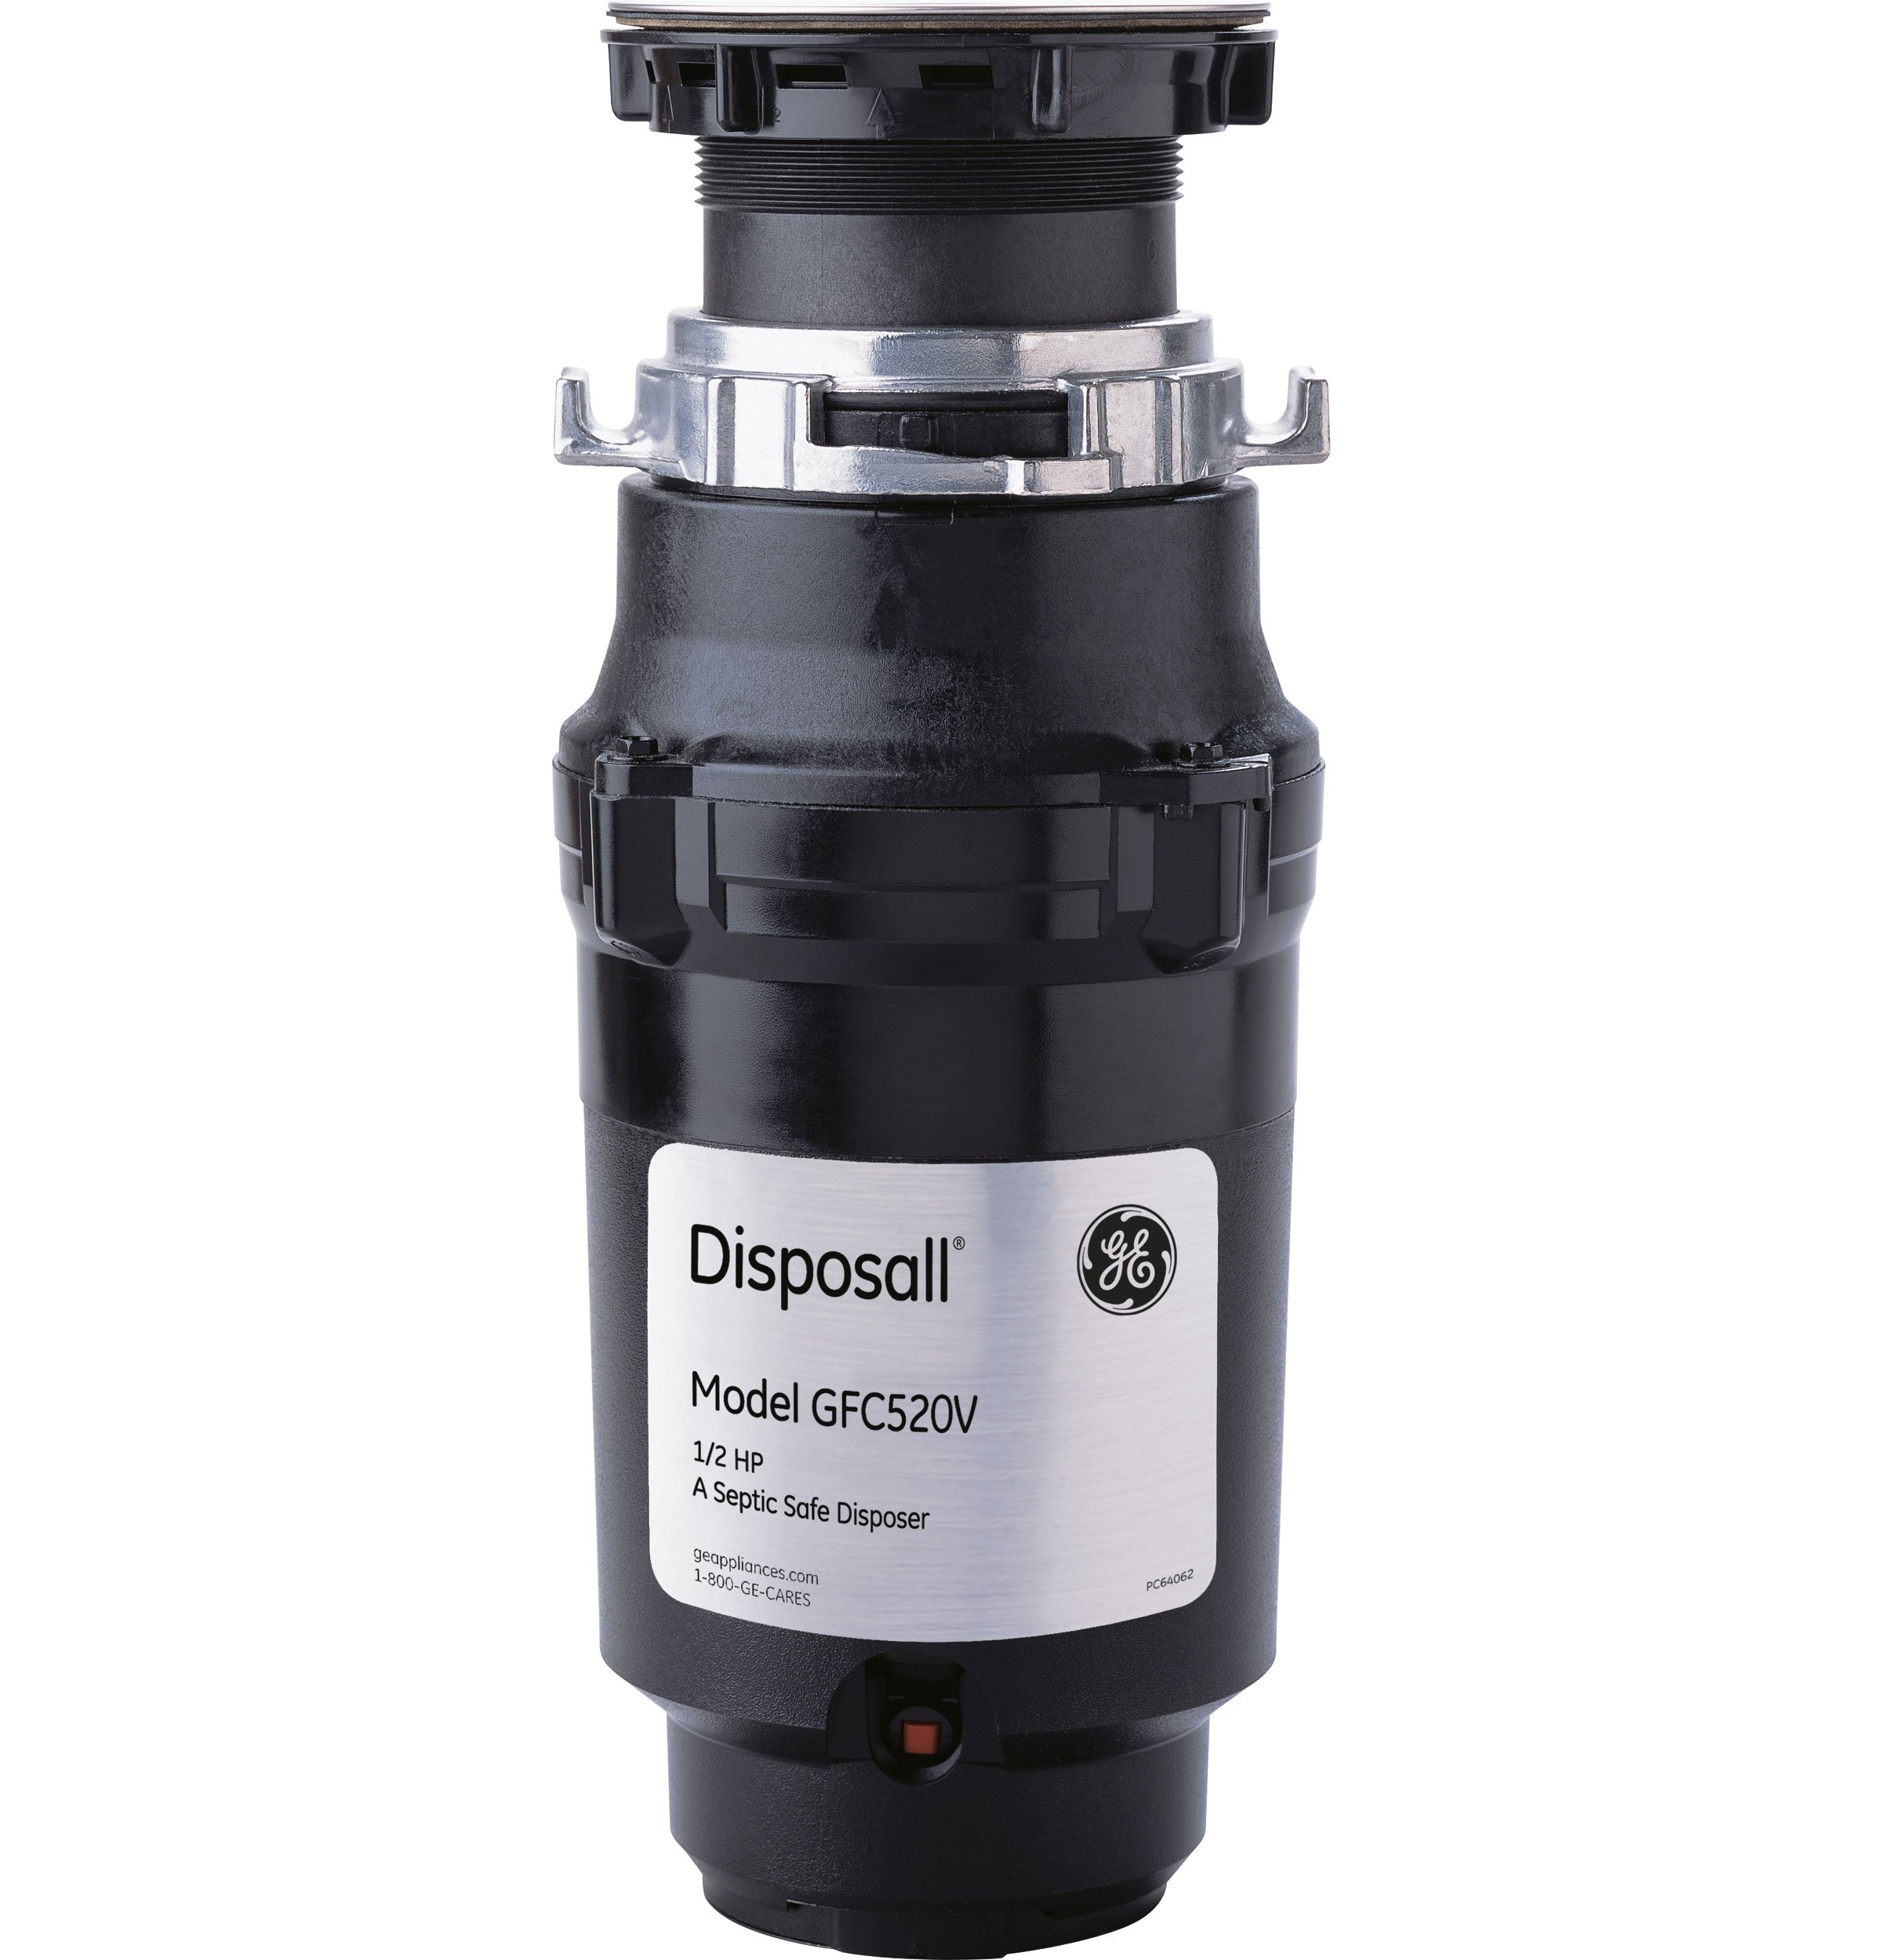 General Electric GFC520V 1/2 Horsepower Continuous Feed Disposall Large Capacity Food Waste Disposer, Black